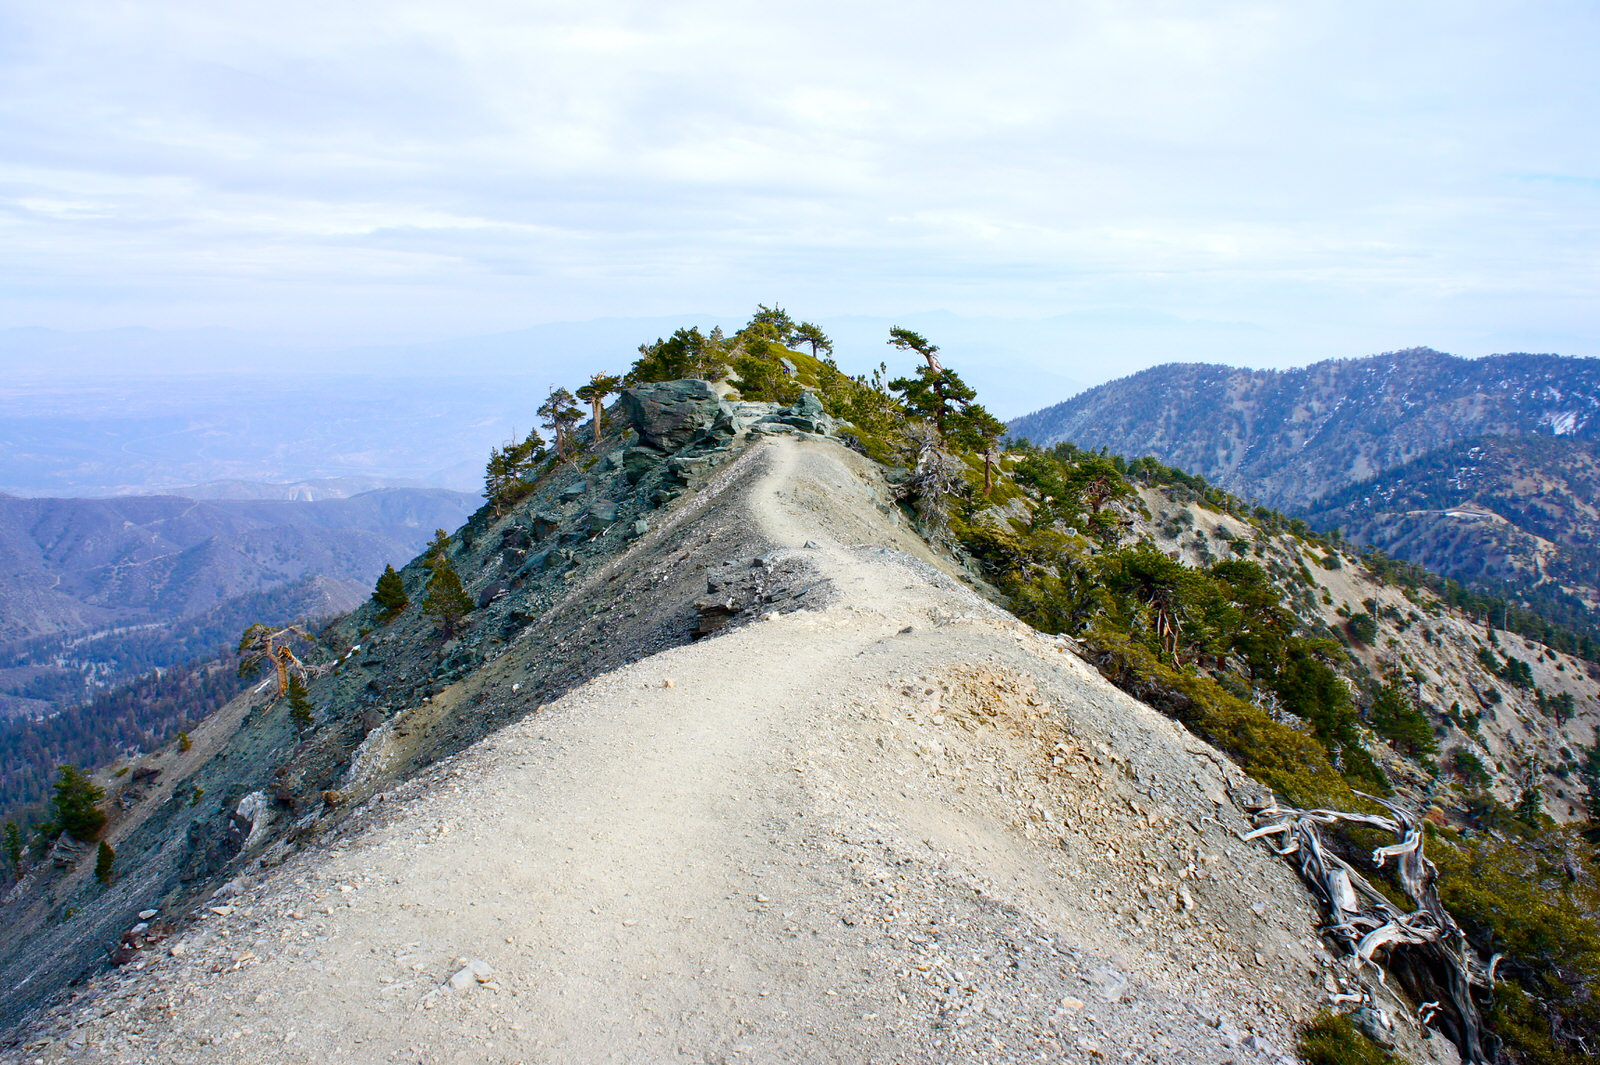 Devil's Backbone trail on Mount Baldy hike.